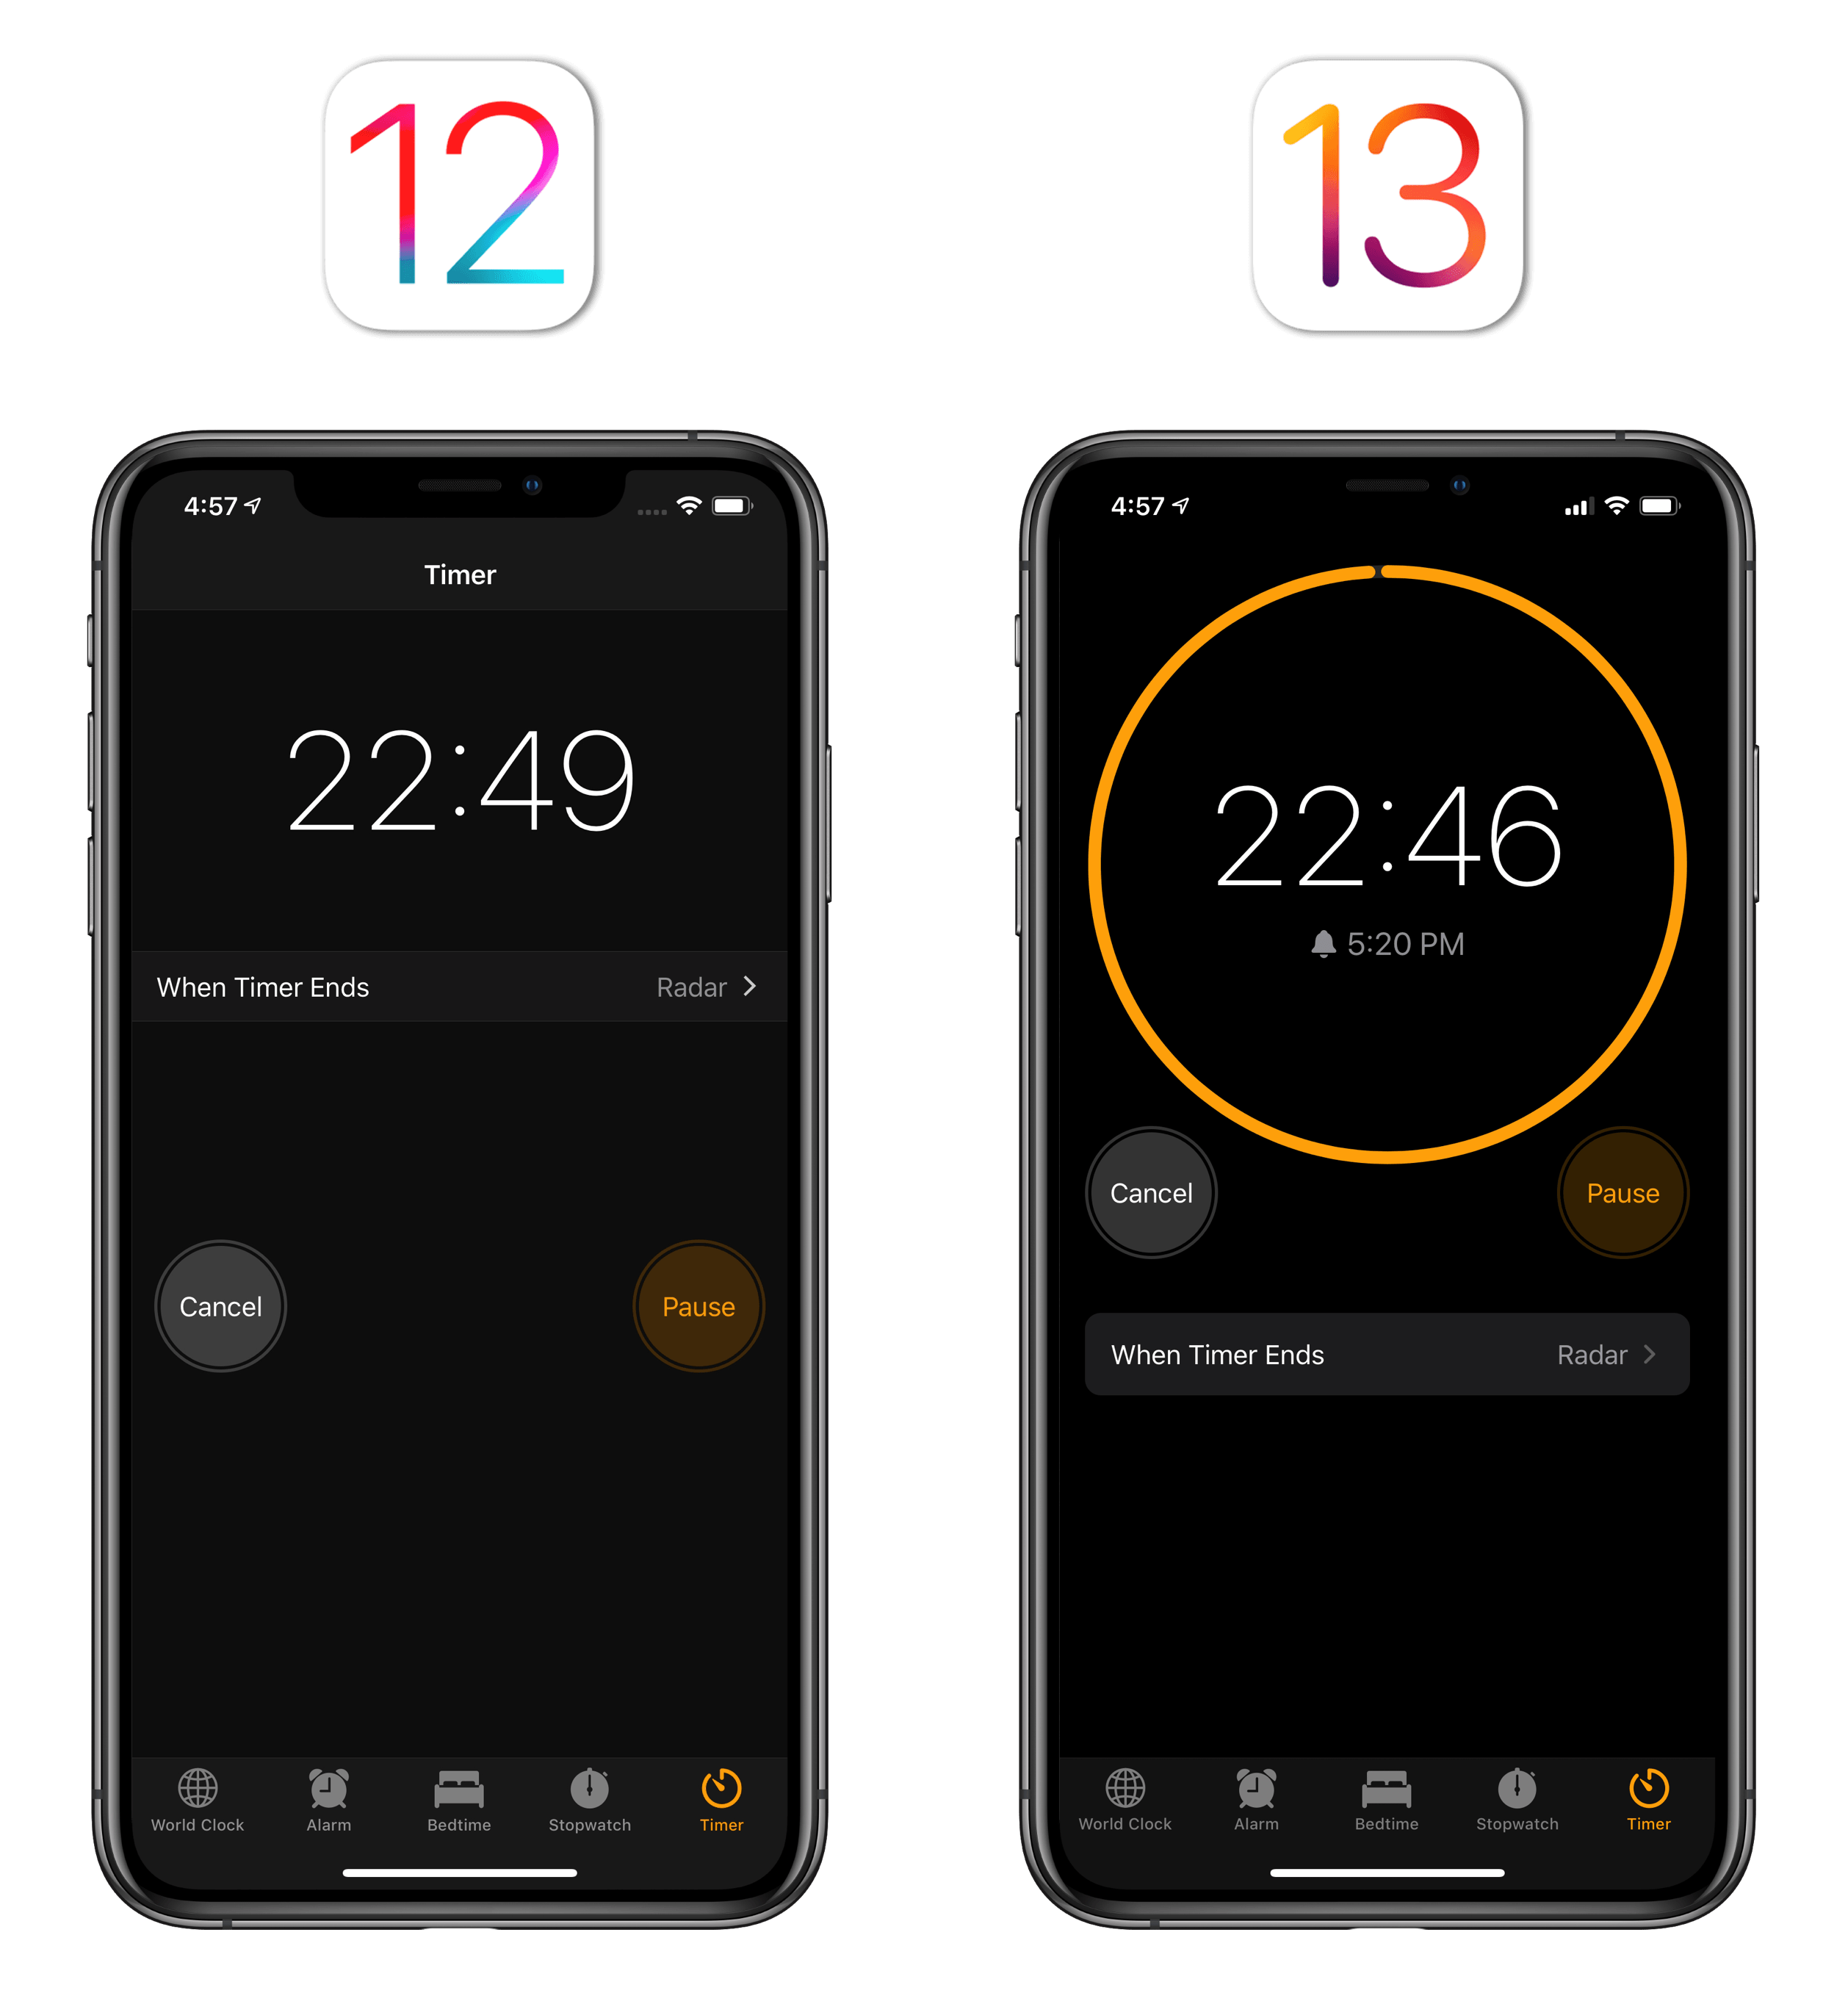 The new timer UI in iOS 13.